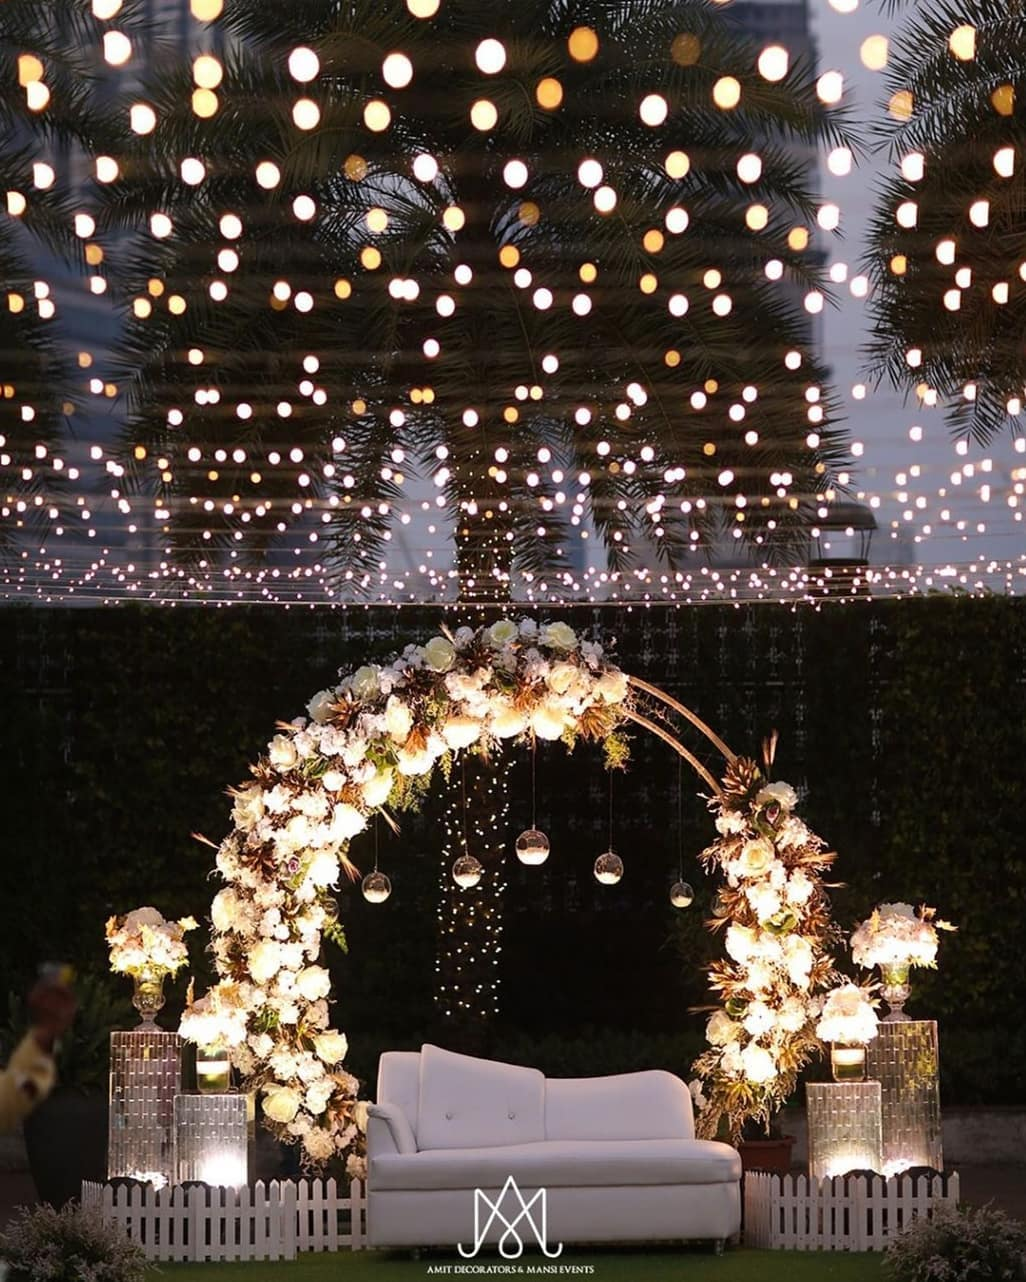 seating decor with flowers and lights